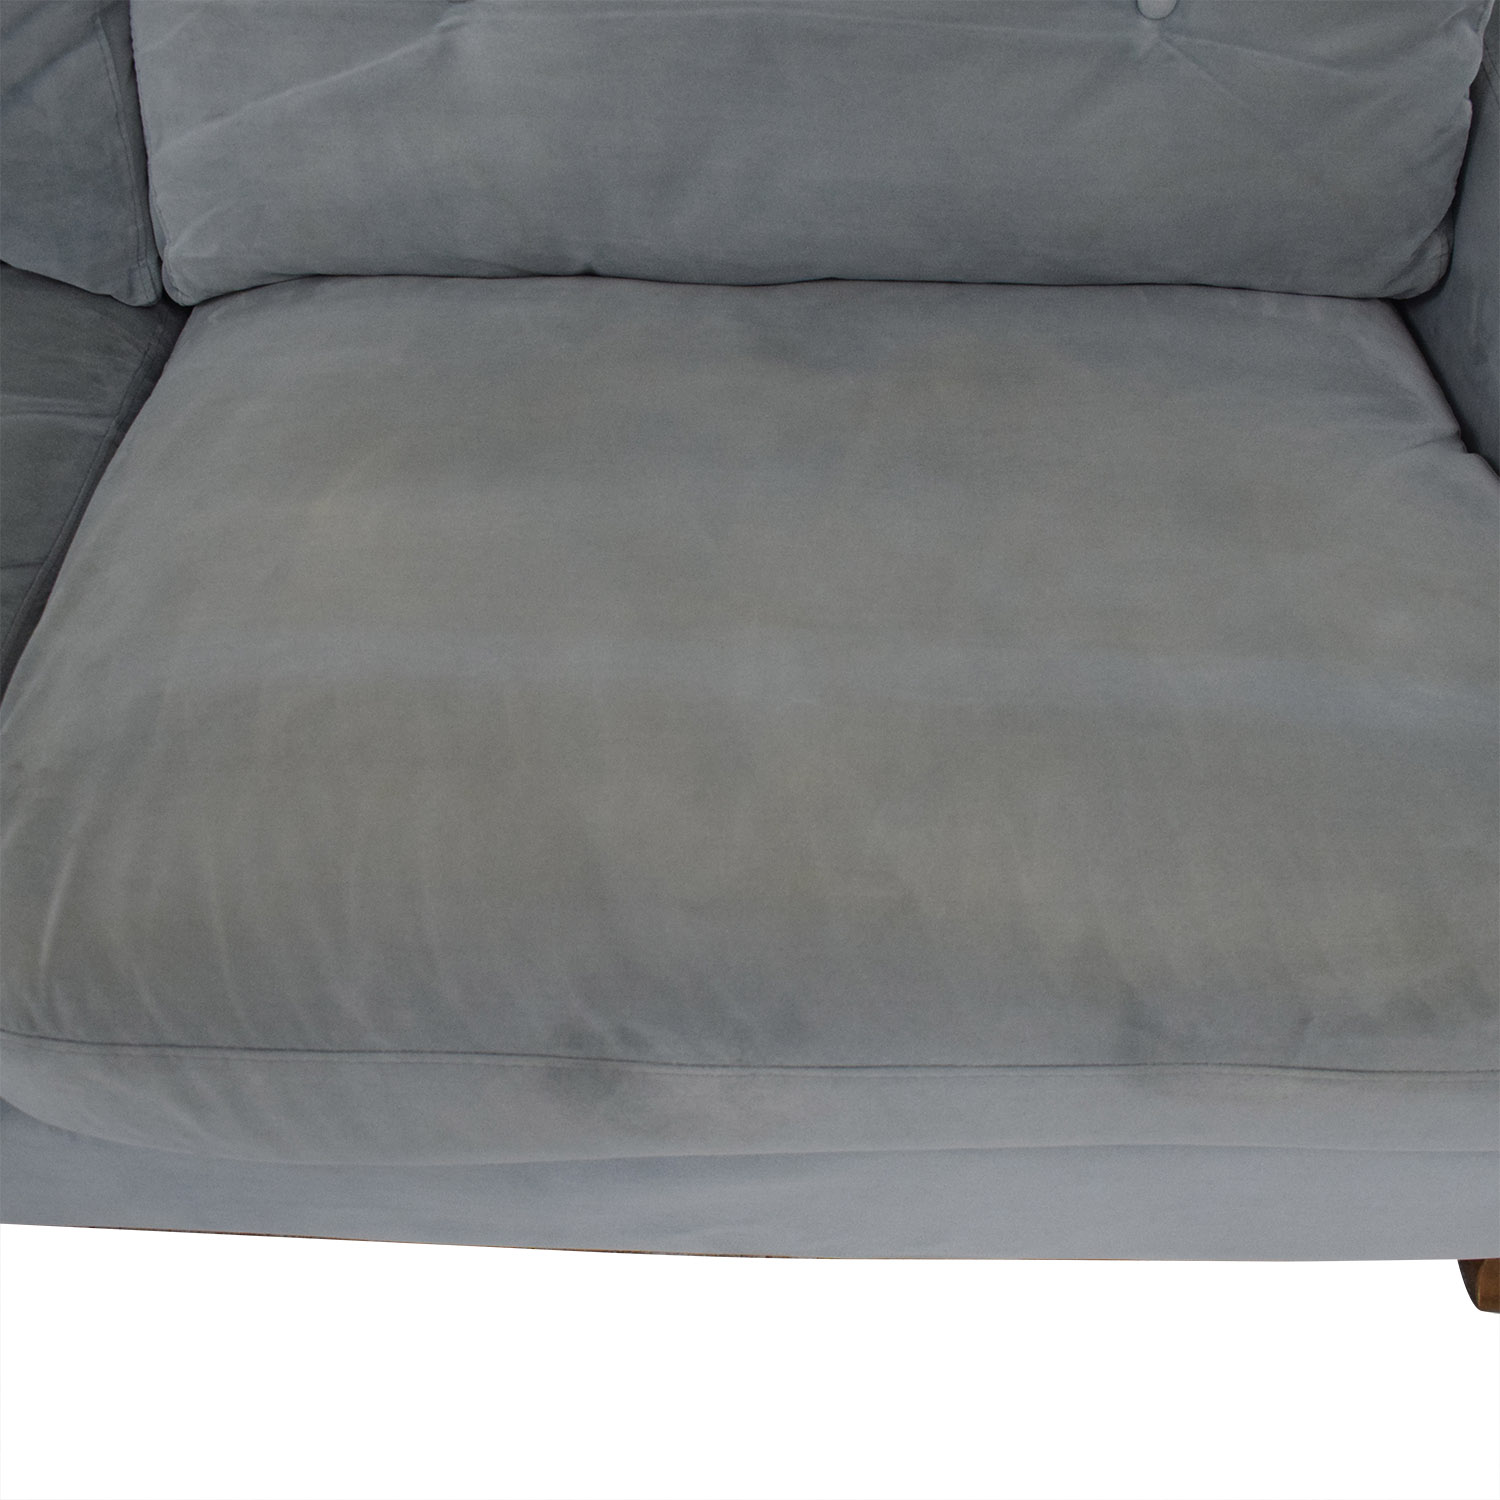 Urban Outfitters Urban Outfitters Two Cushion Sofa Classic Sofas